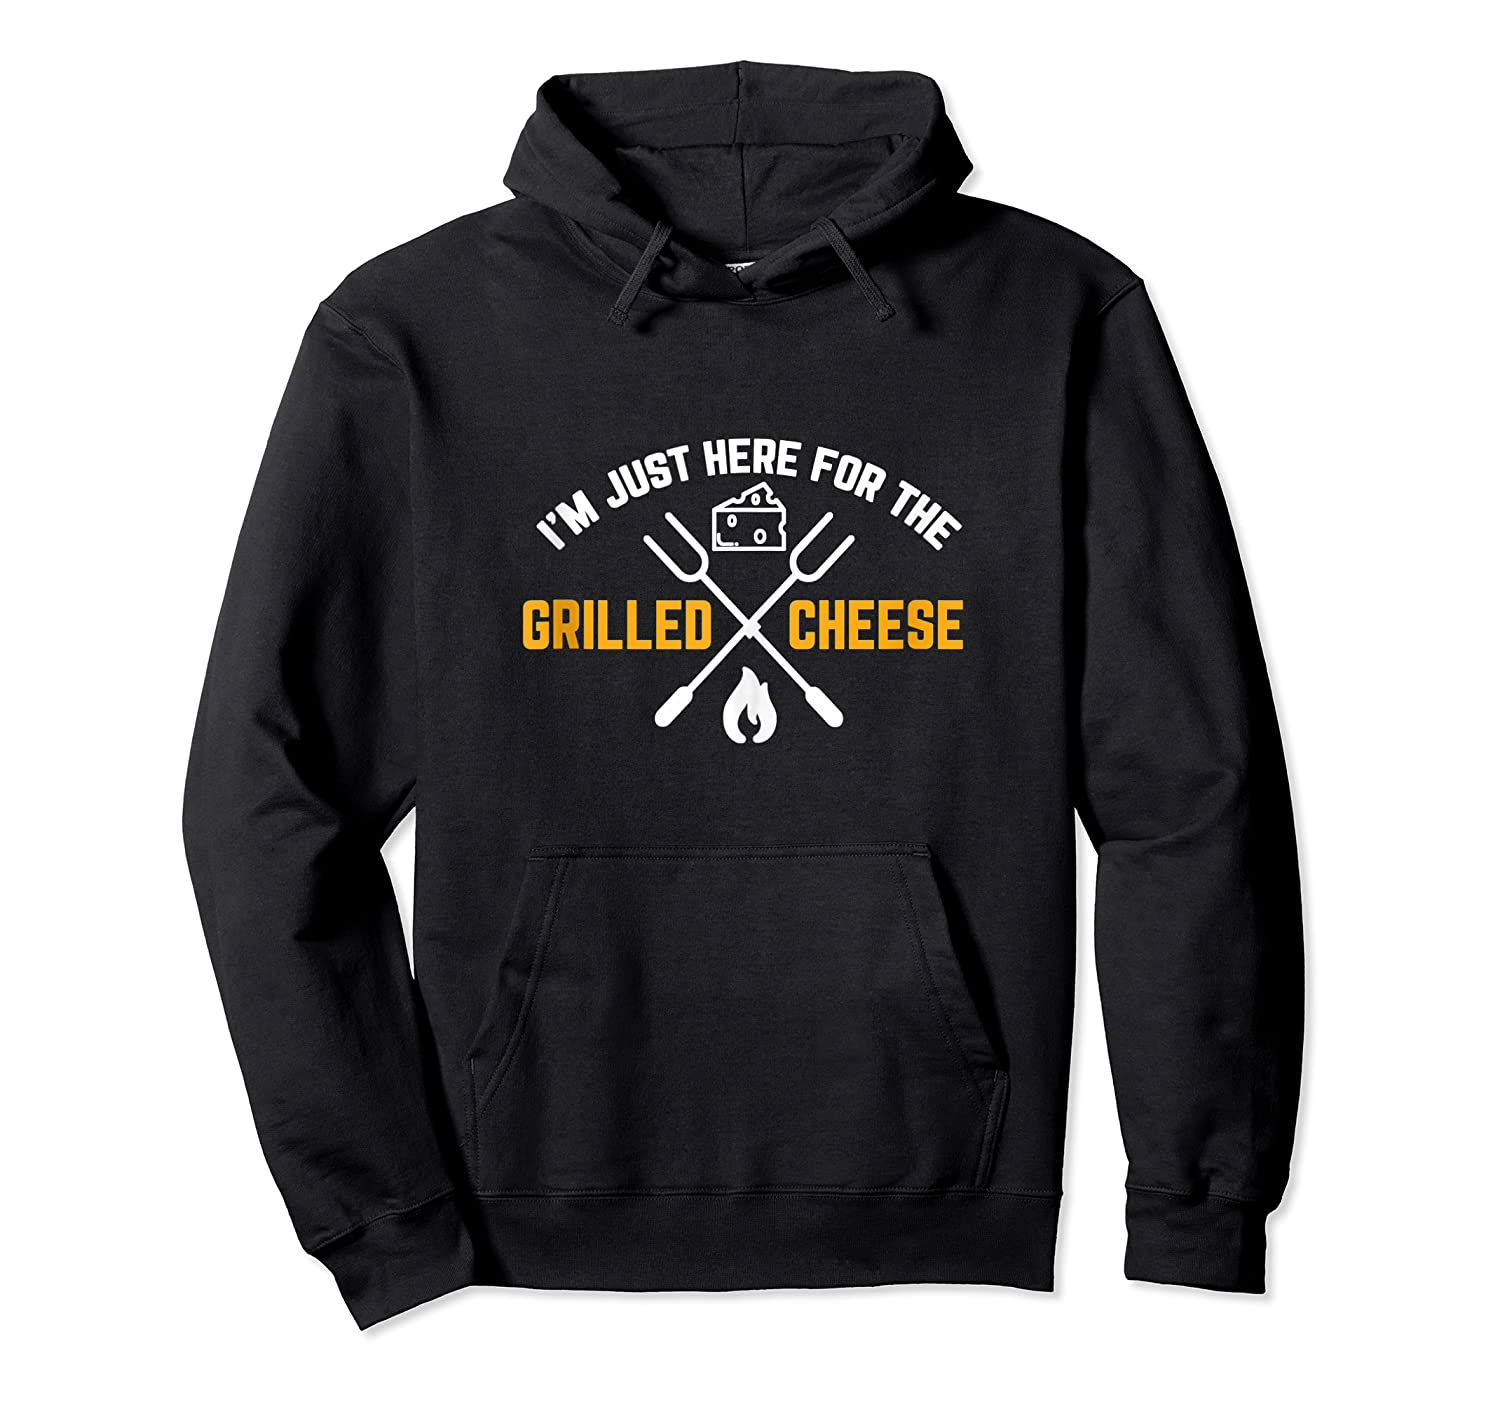 I M Just Here For The Grilled Cheese Funny Gift Tank Top Shirts Unisex Pullover Hoodie